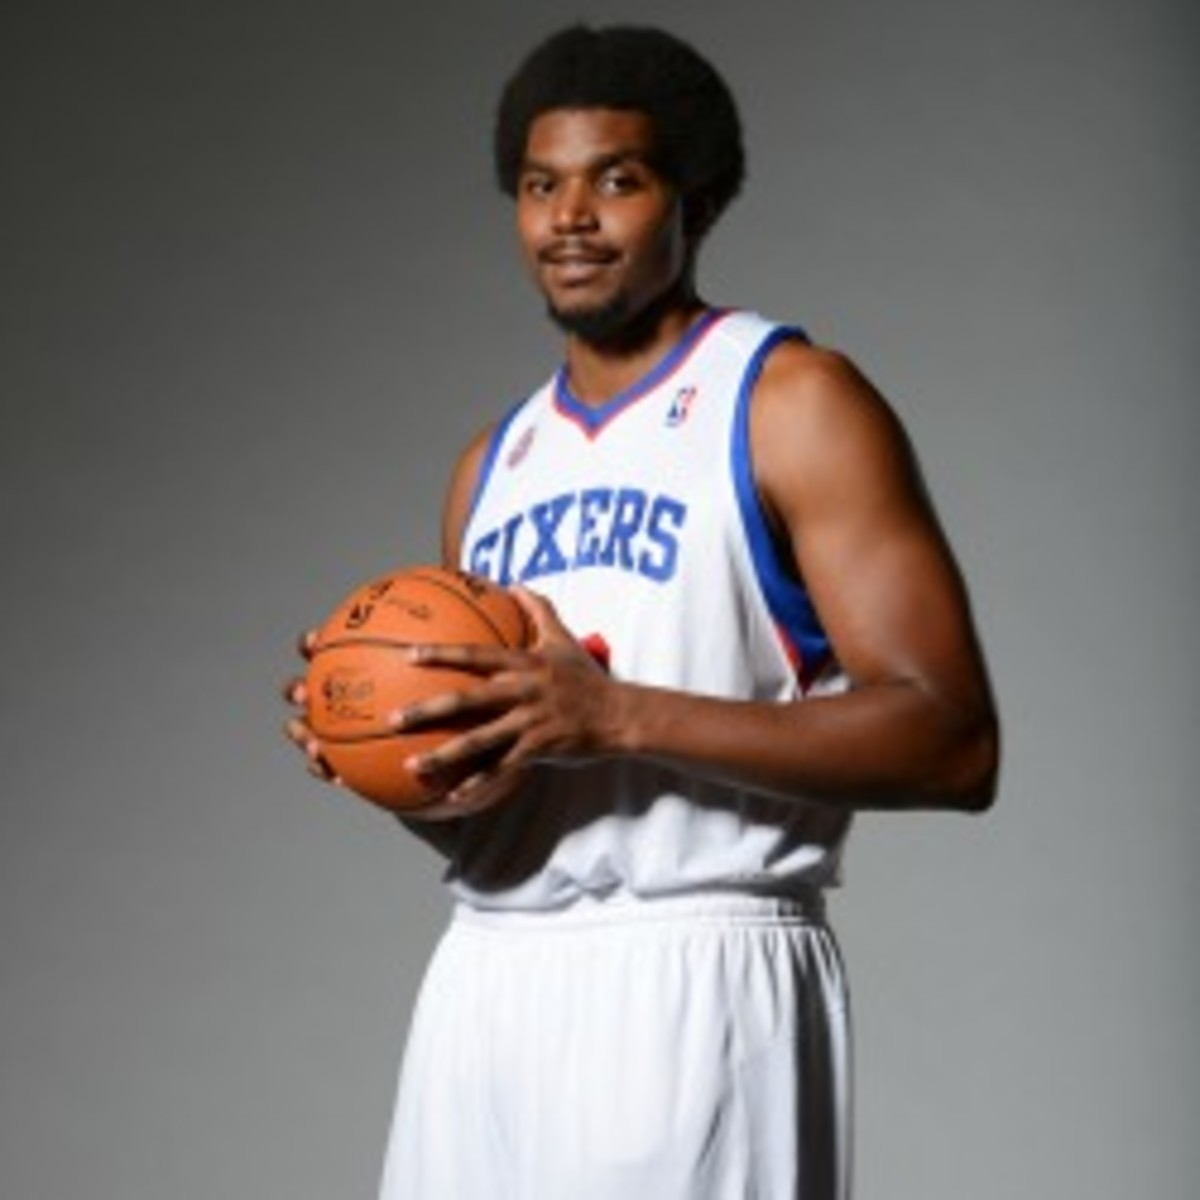 Sixers center Andrew Bynum has yet to play in a game this season due to bruises and weakened cartilage in his knees. (Jesse D. Garrabrant/Getty Images)